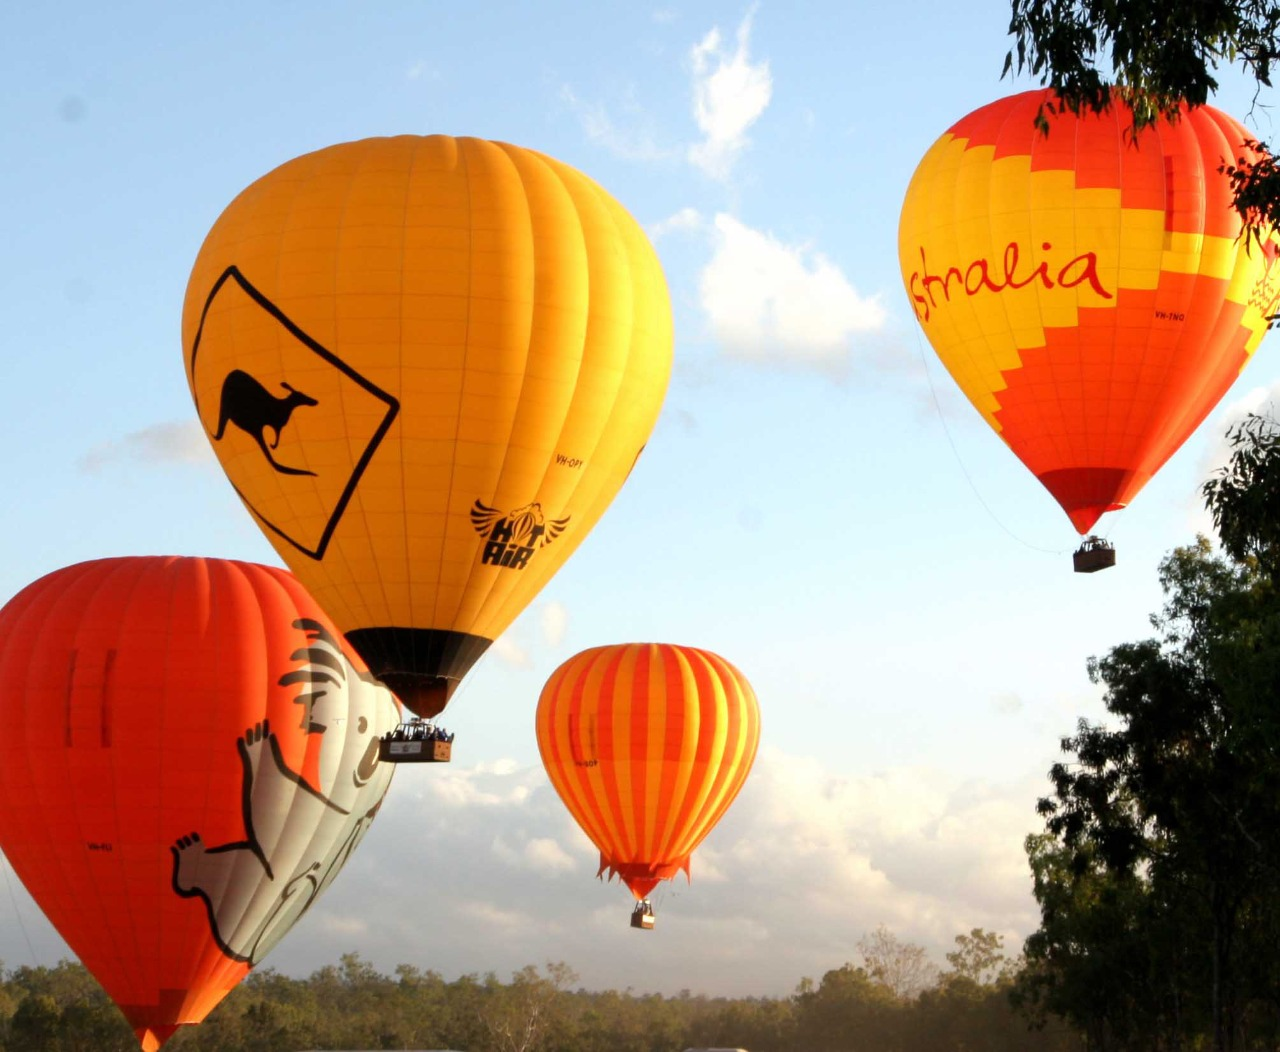 cairns attractions cairns hot air ballooning